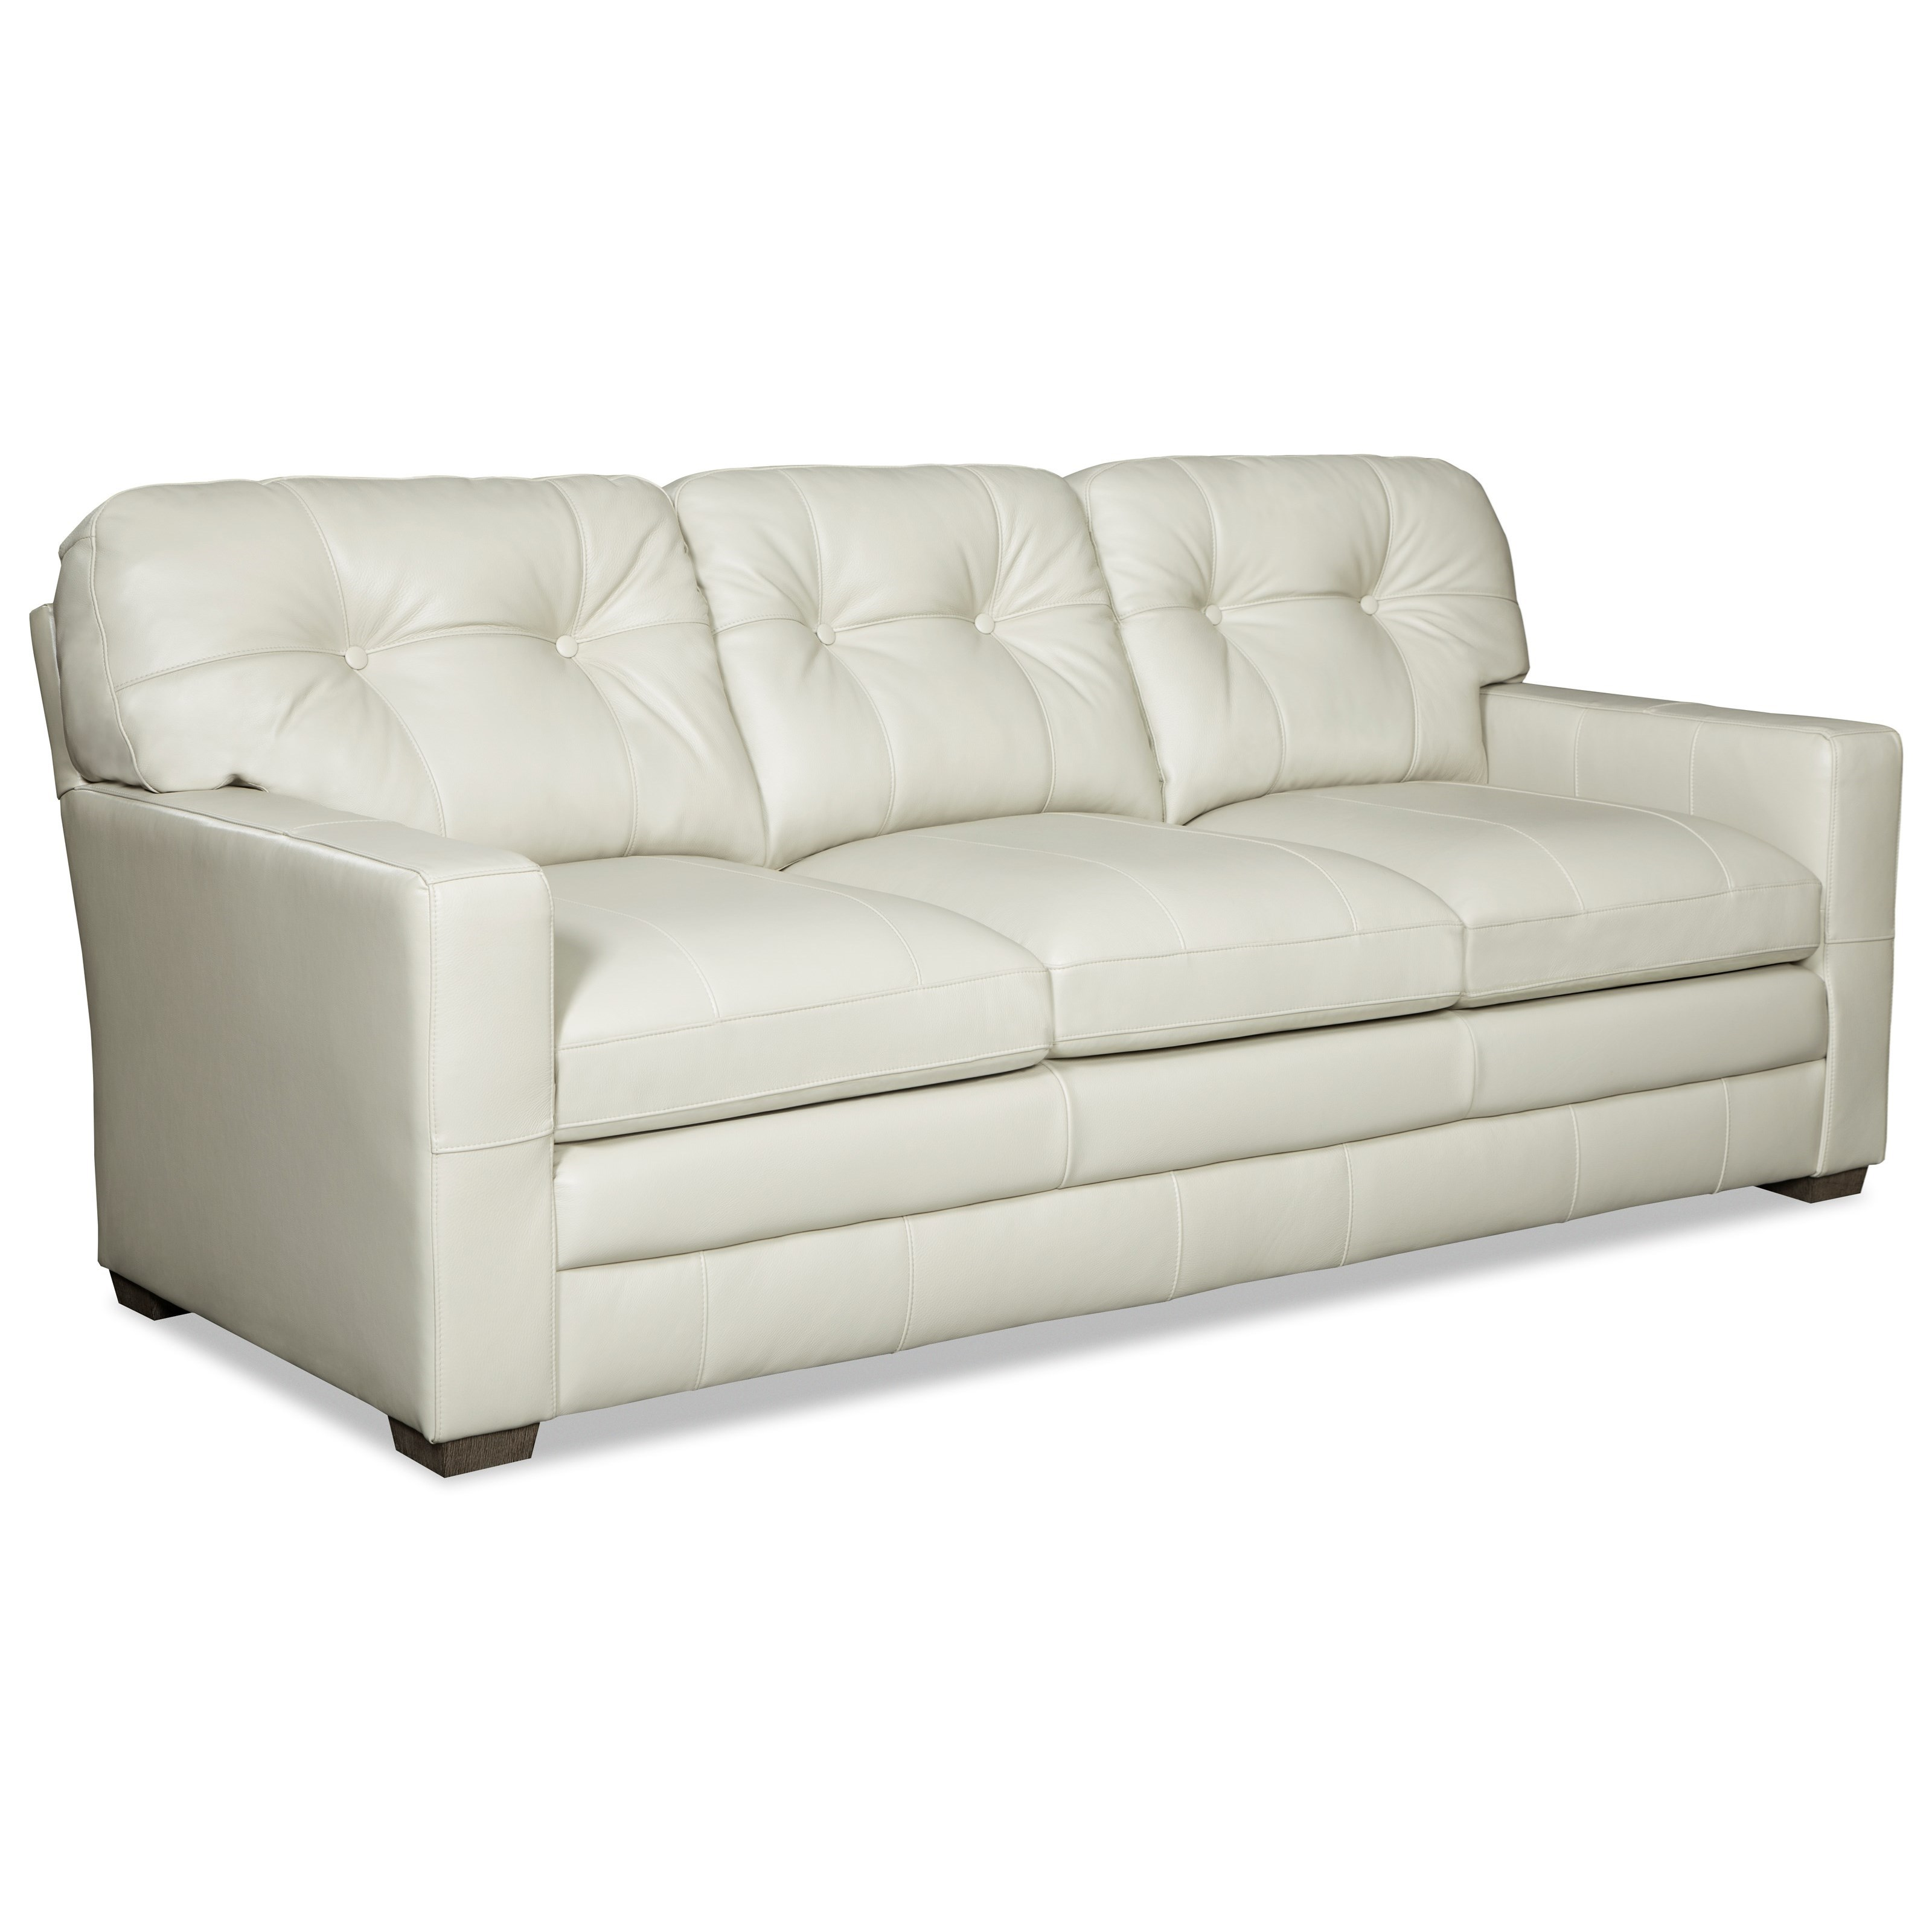 Contemporary Tufted Sofa by Best Home Furnishings | Wolf Furniture